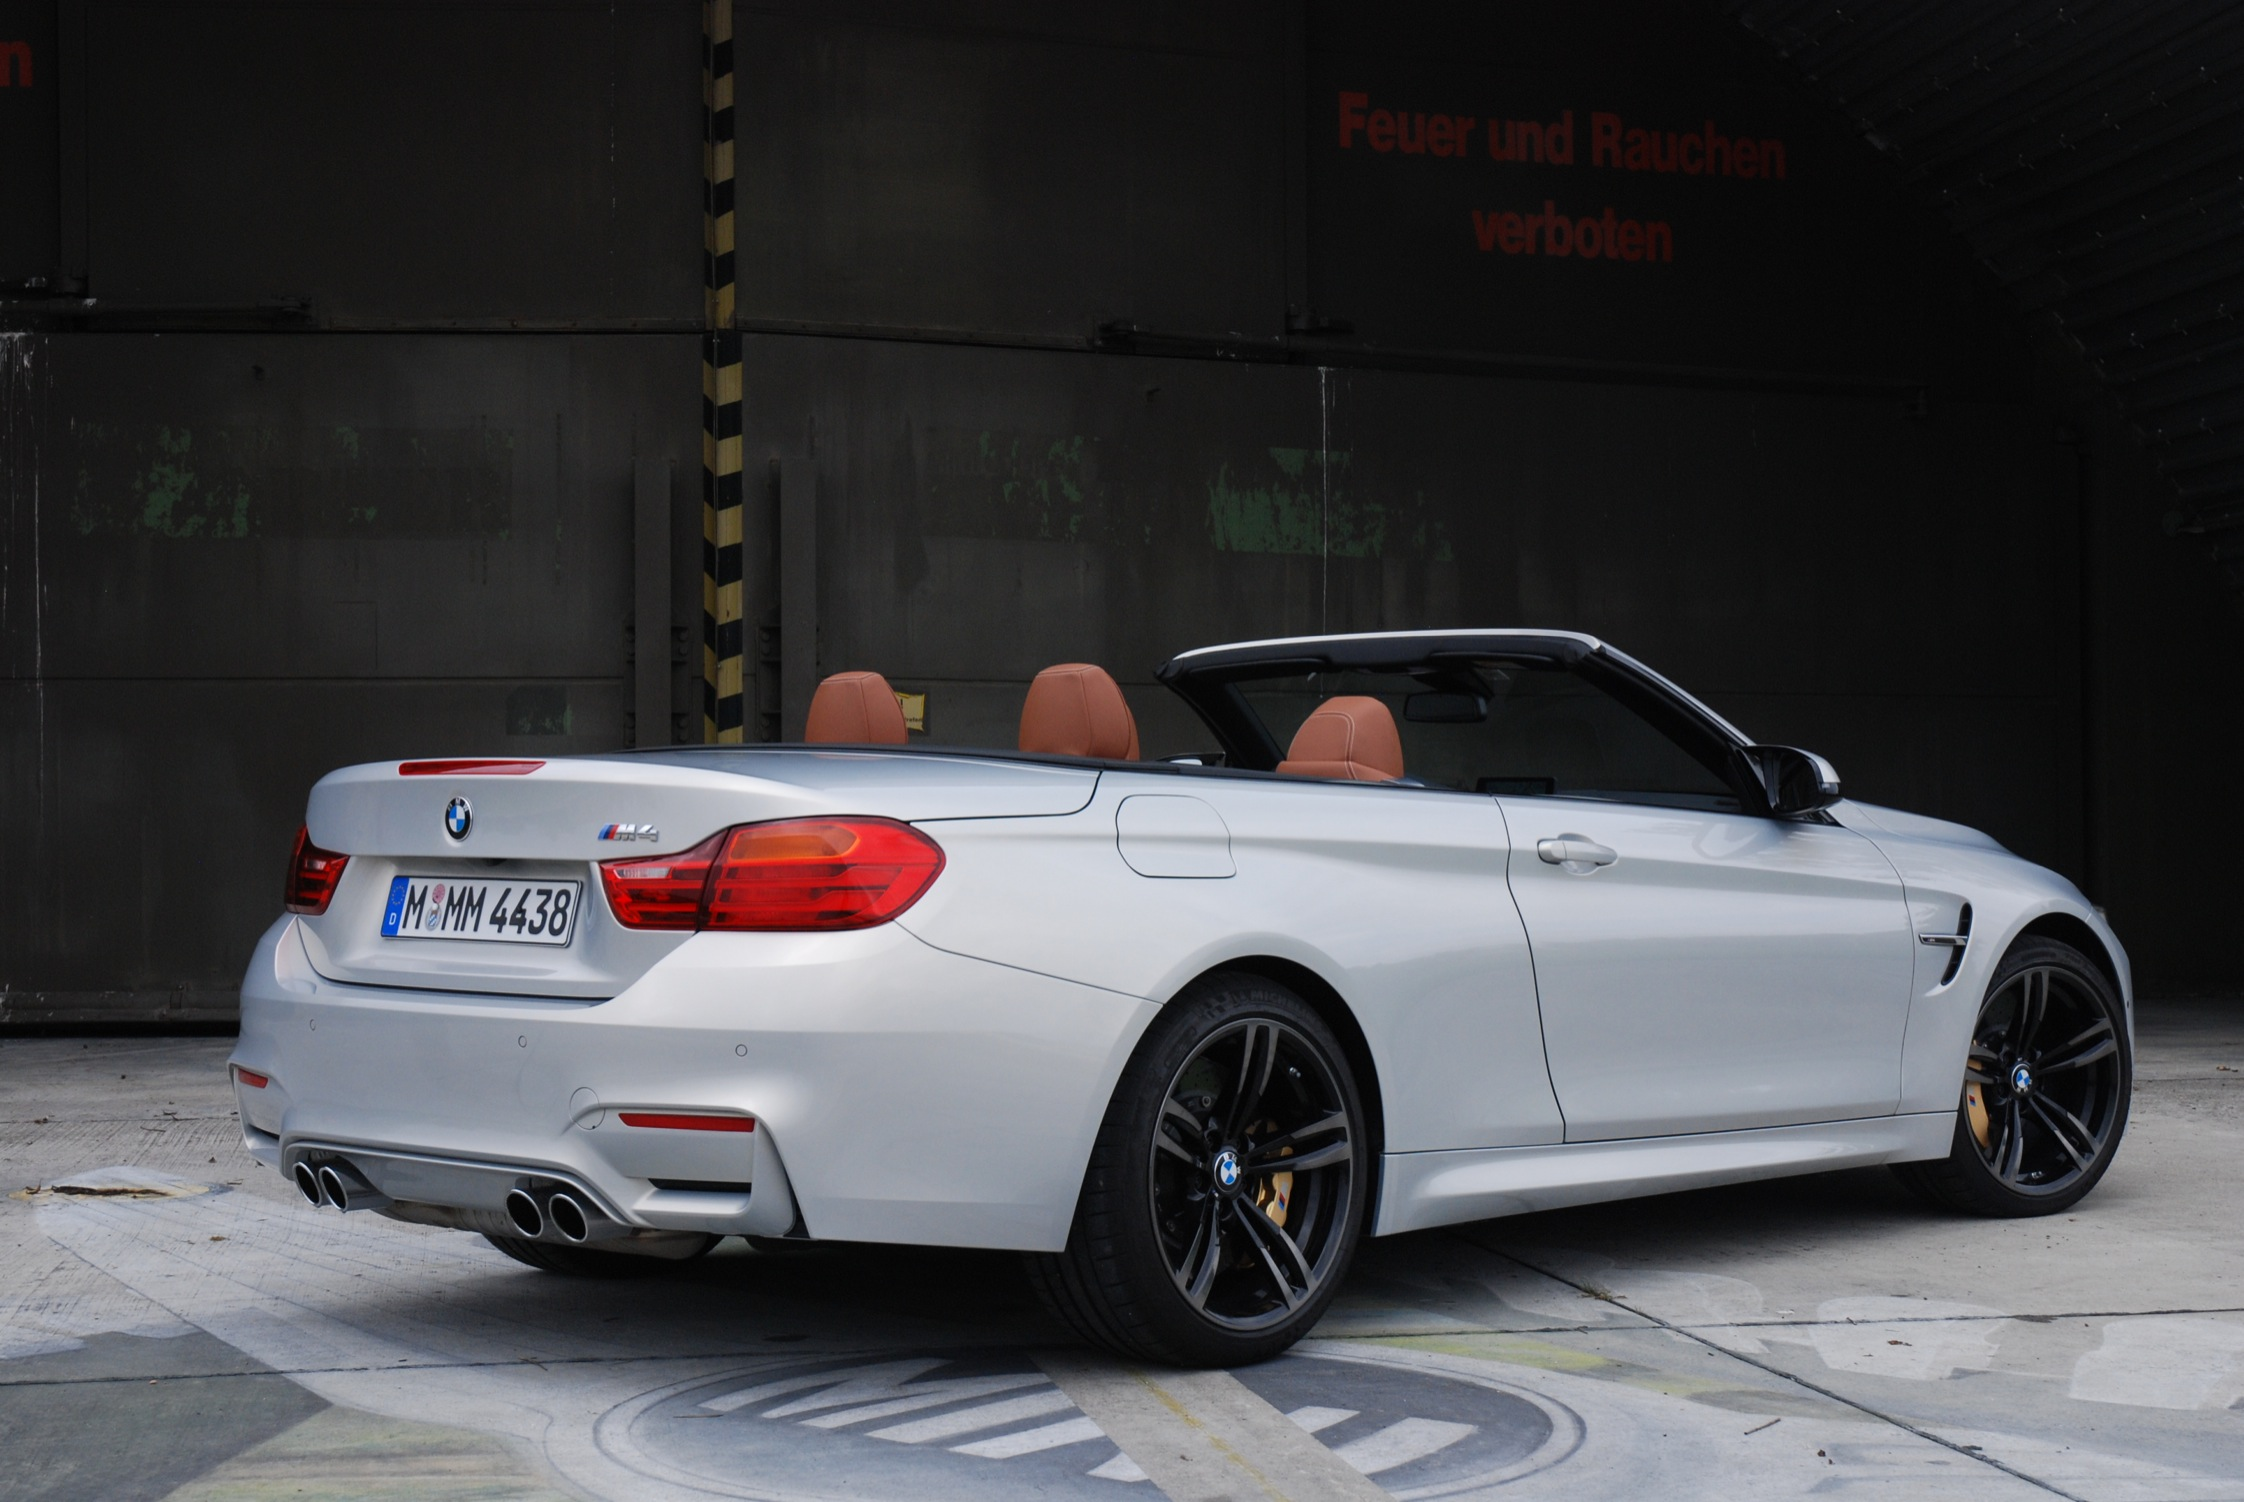 essai bmw m4 cabriolet motorlegend. Black Bedroom Furniture Sets. Home Design Ideas